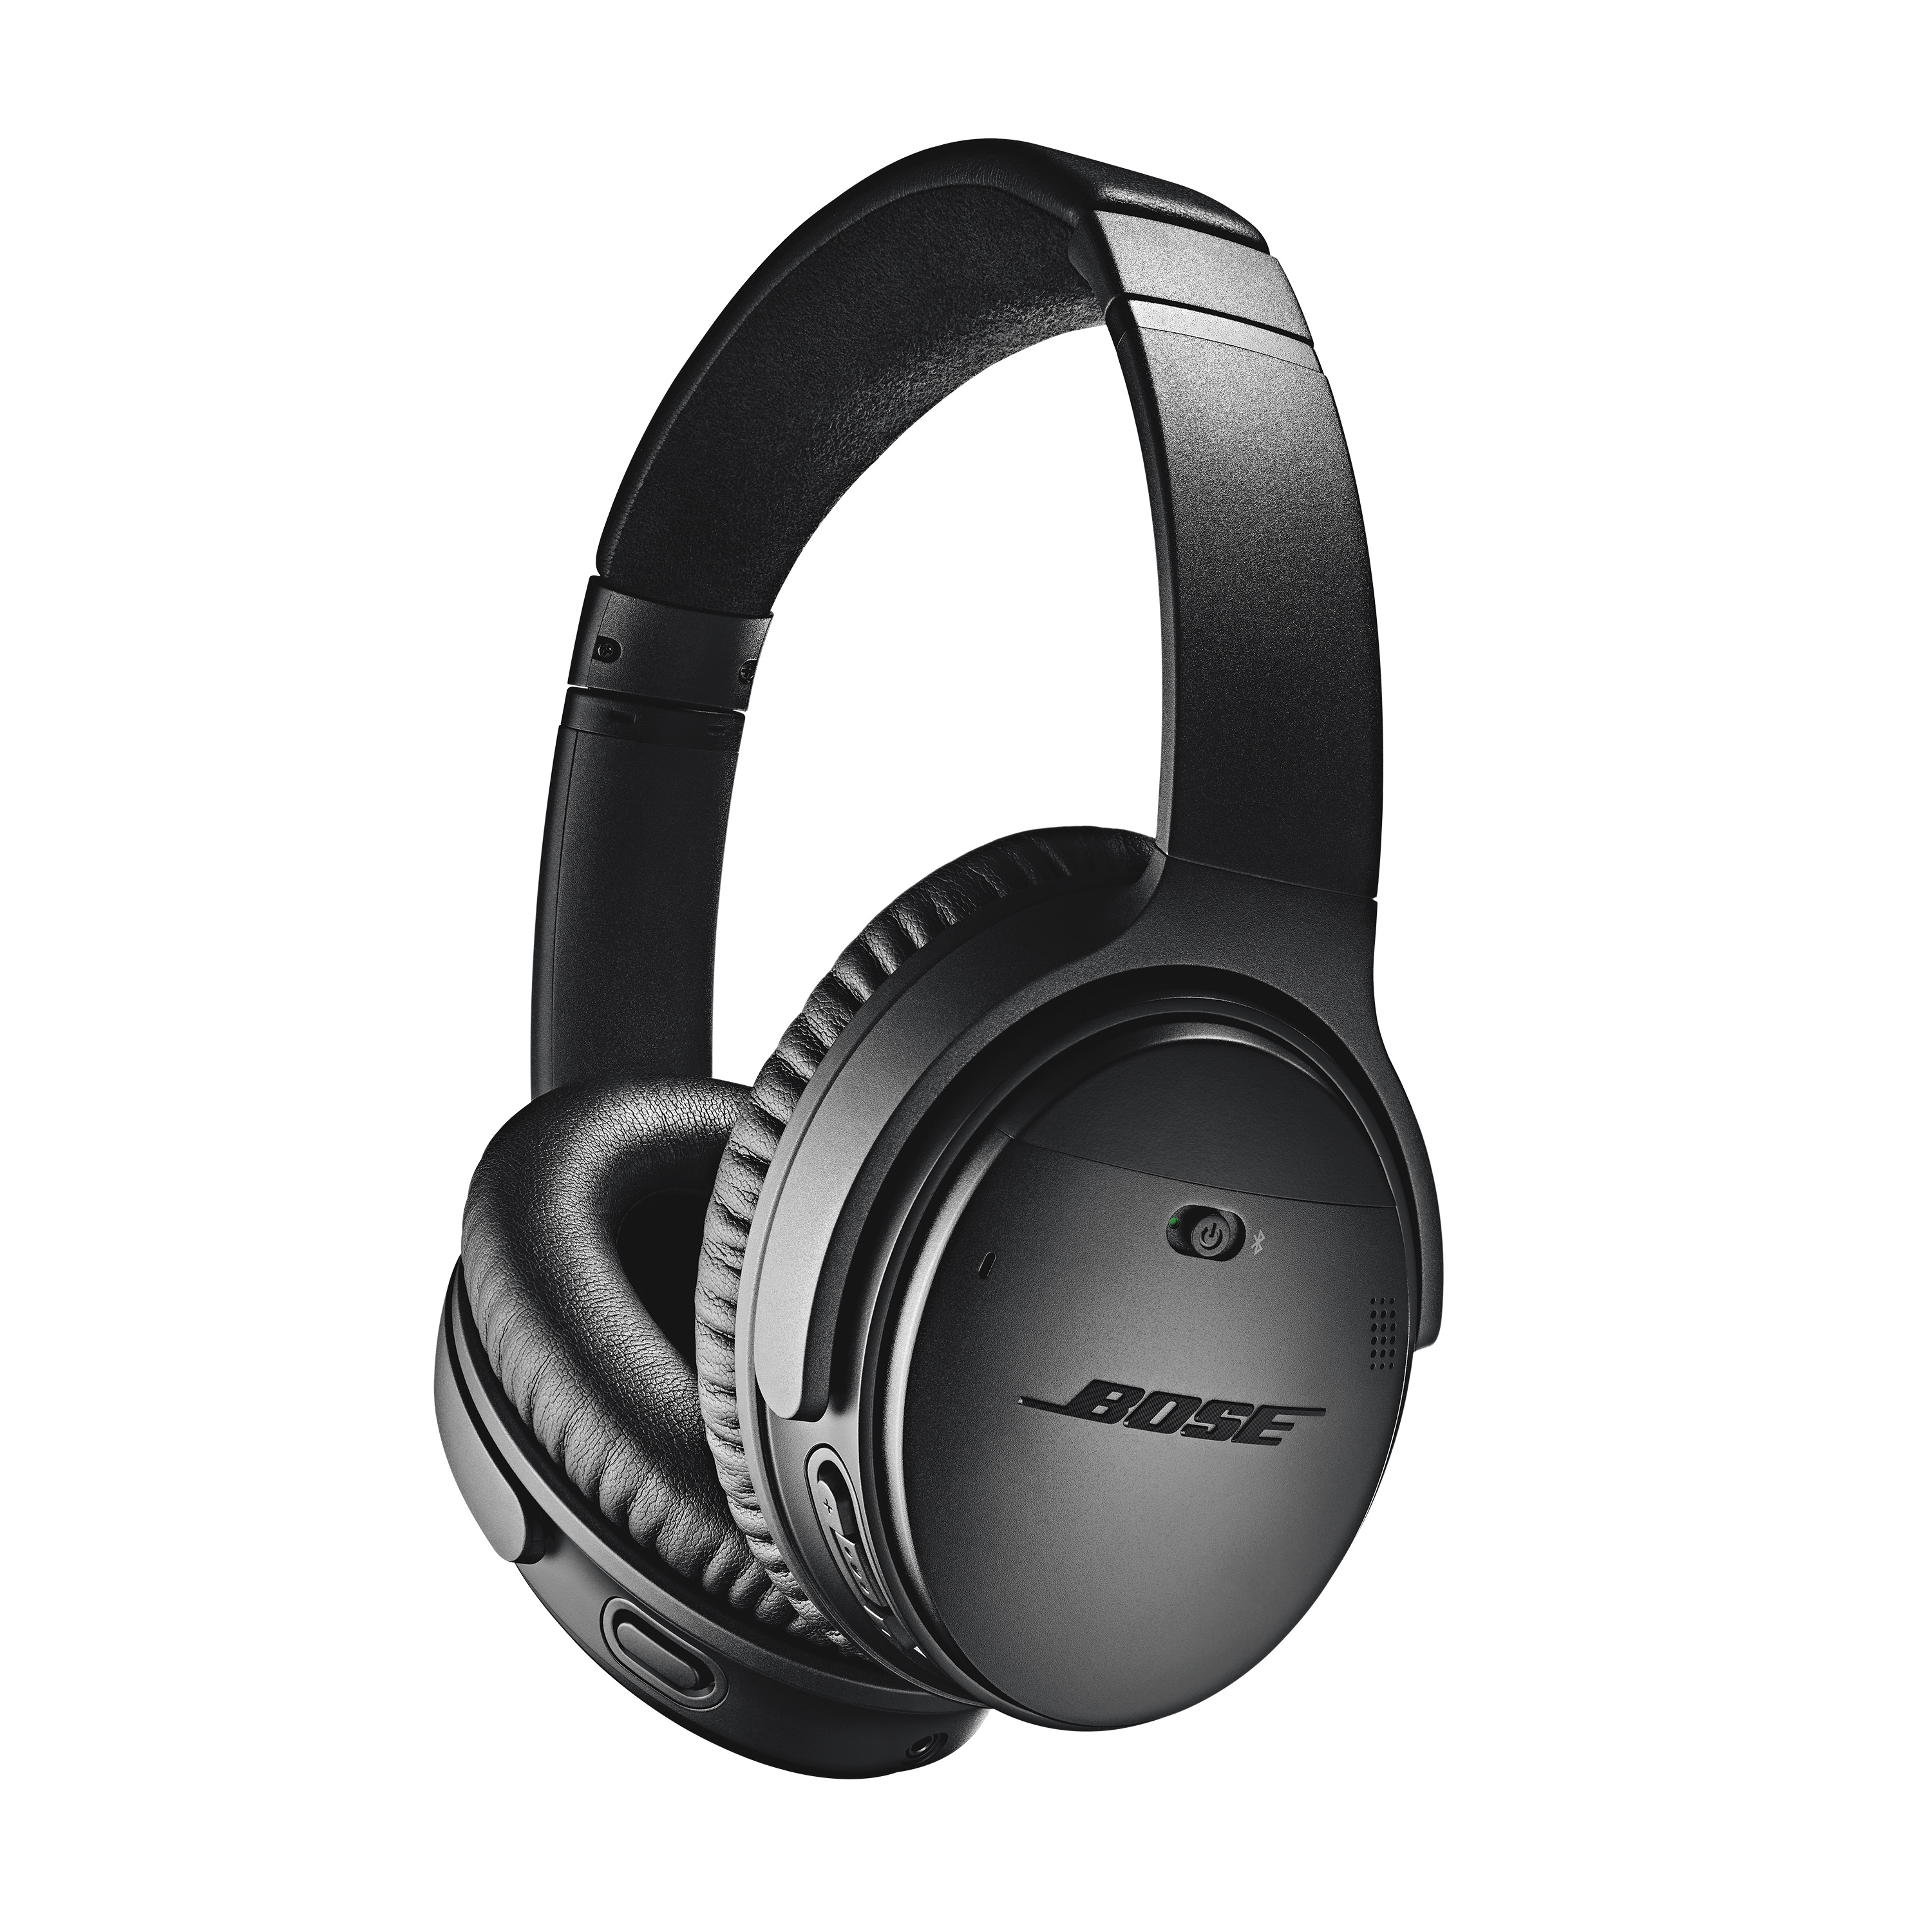 Bose QuietComfort QC35 II noise-cancelling headset optimised for Google Assistant - Press picture courtesy of Bose Corporation